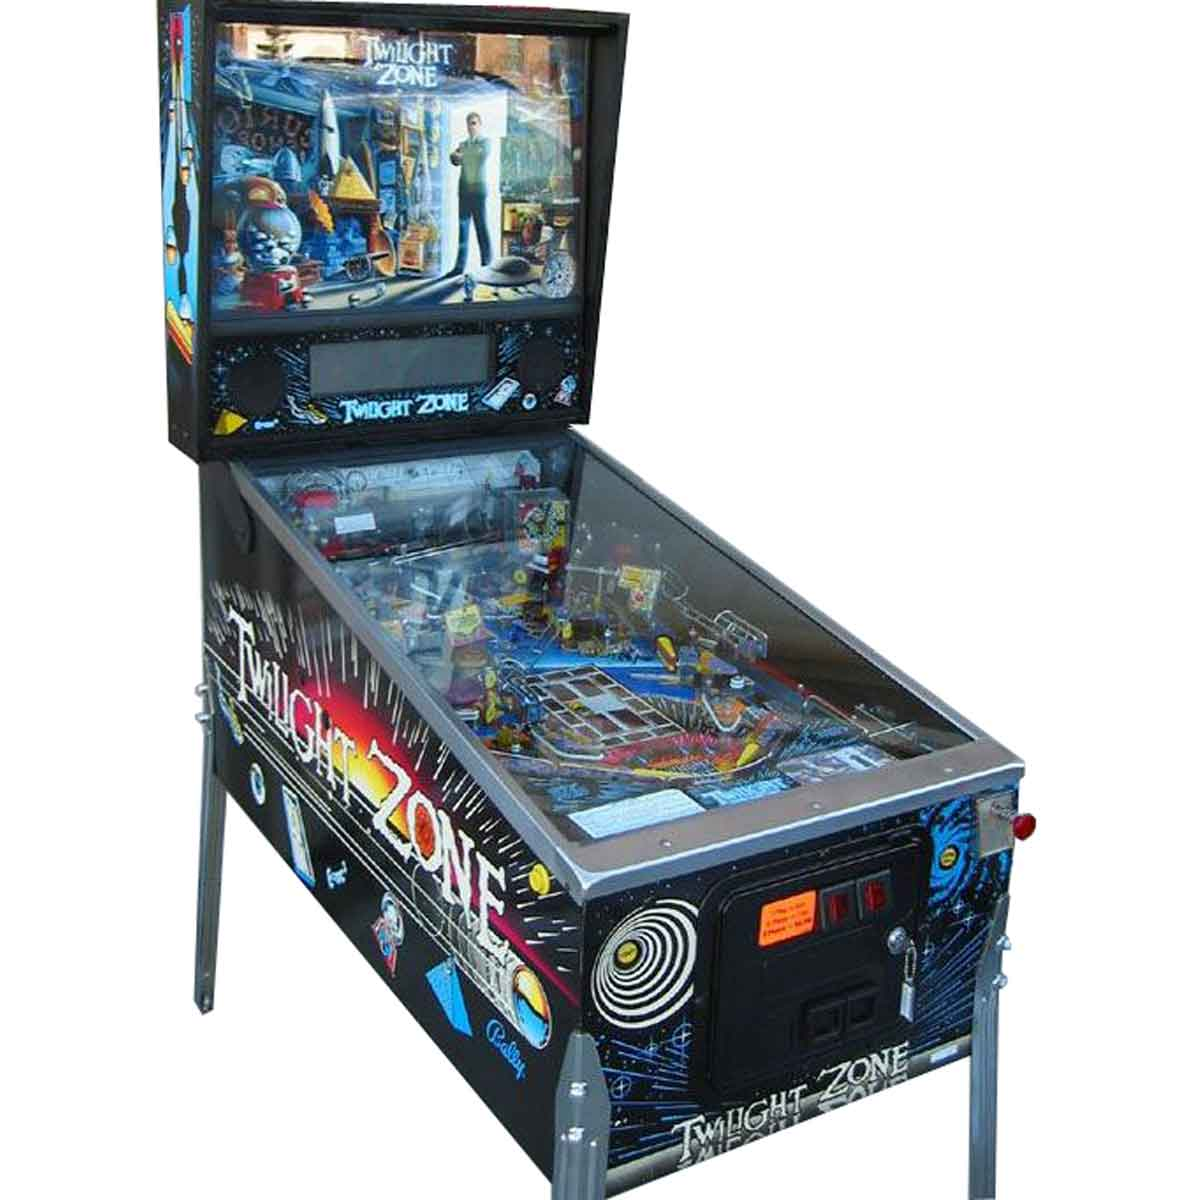 Buy Twilight Zone Pinball Machine by Bally Online at $9999